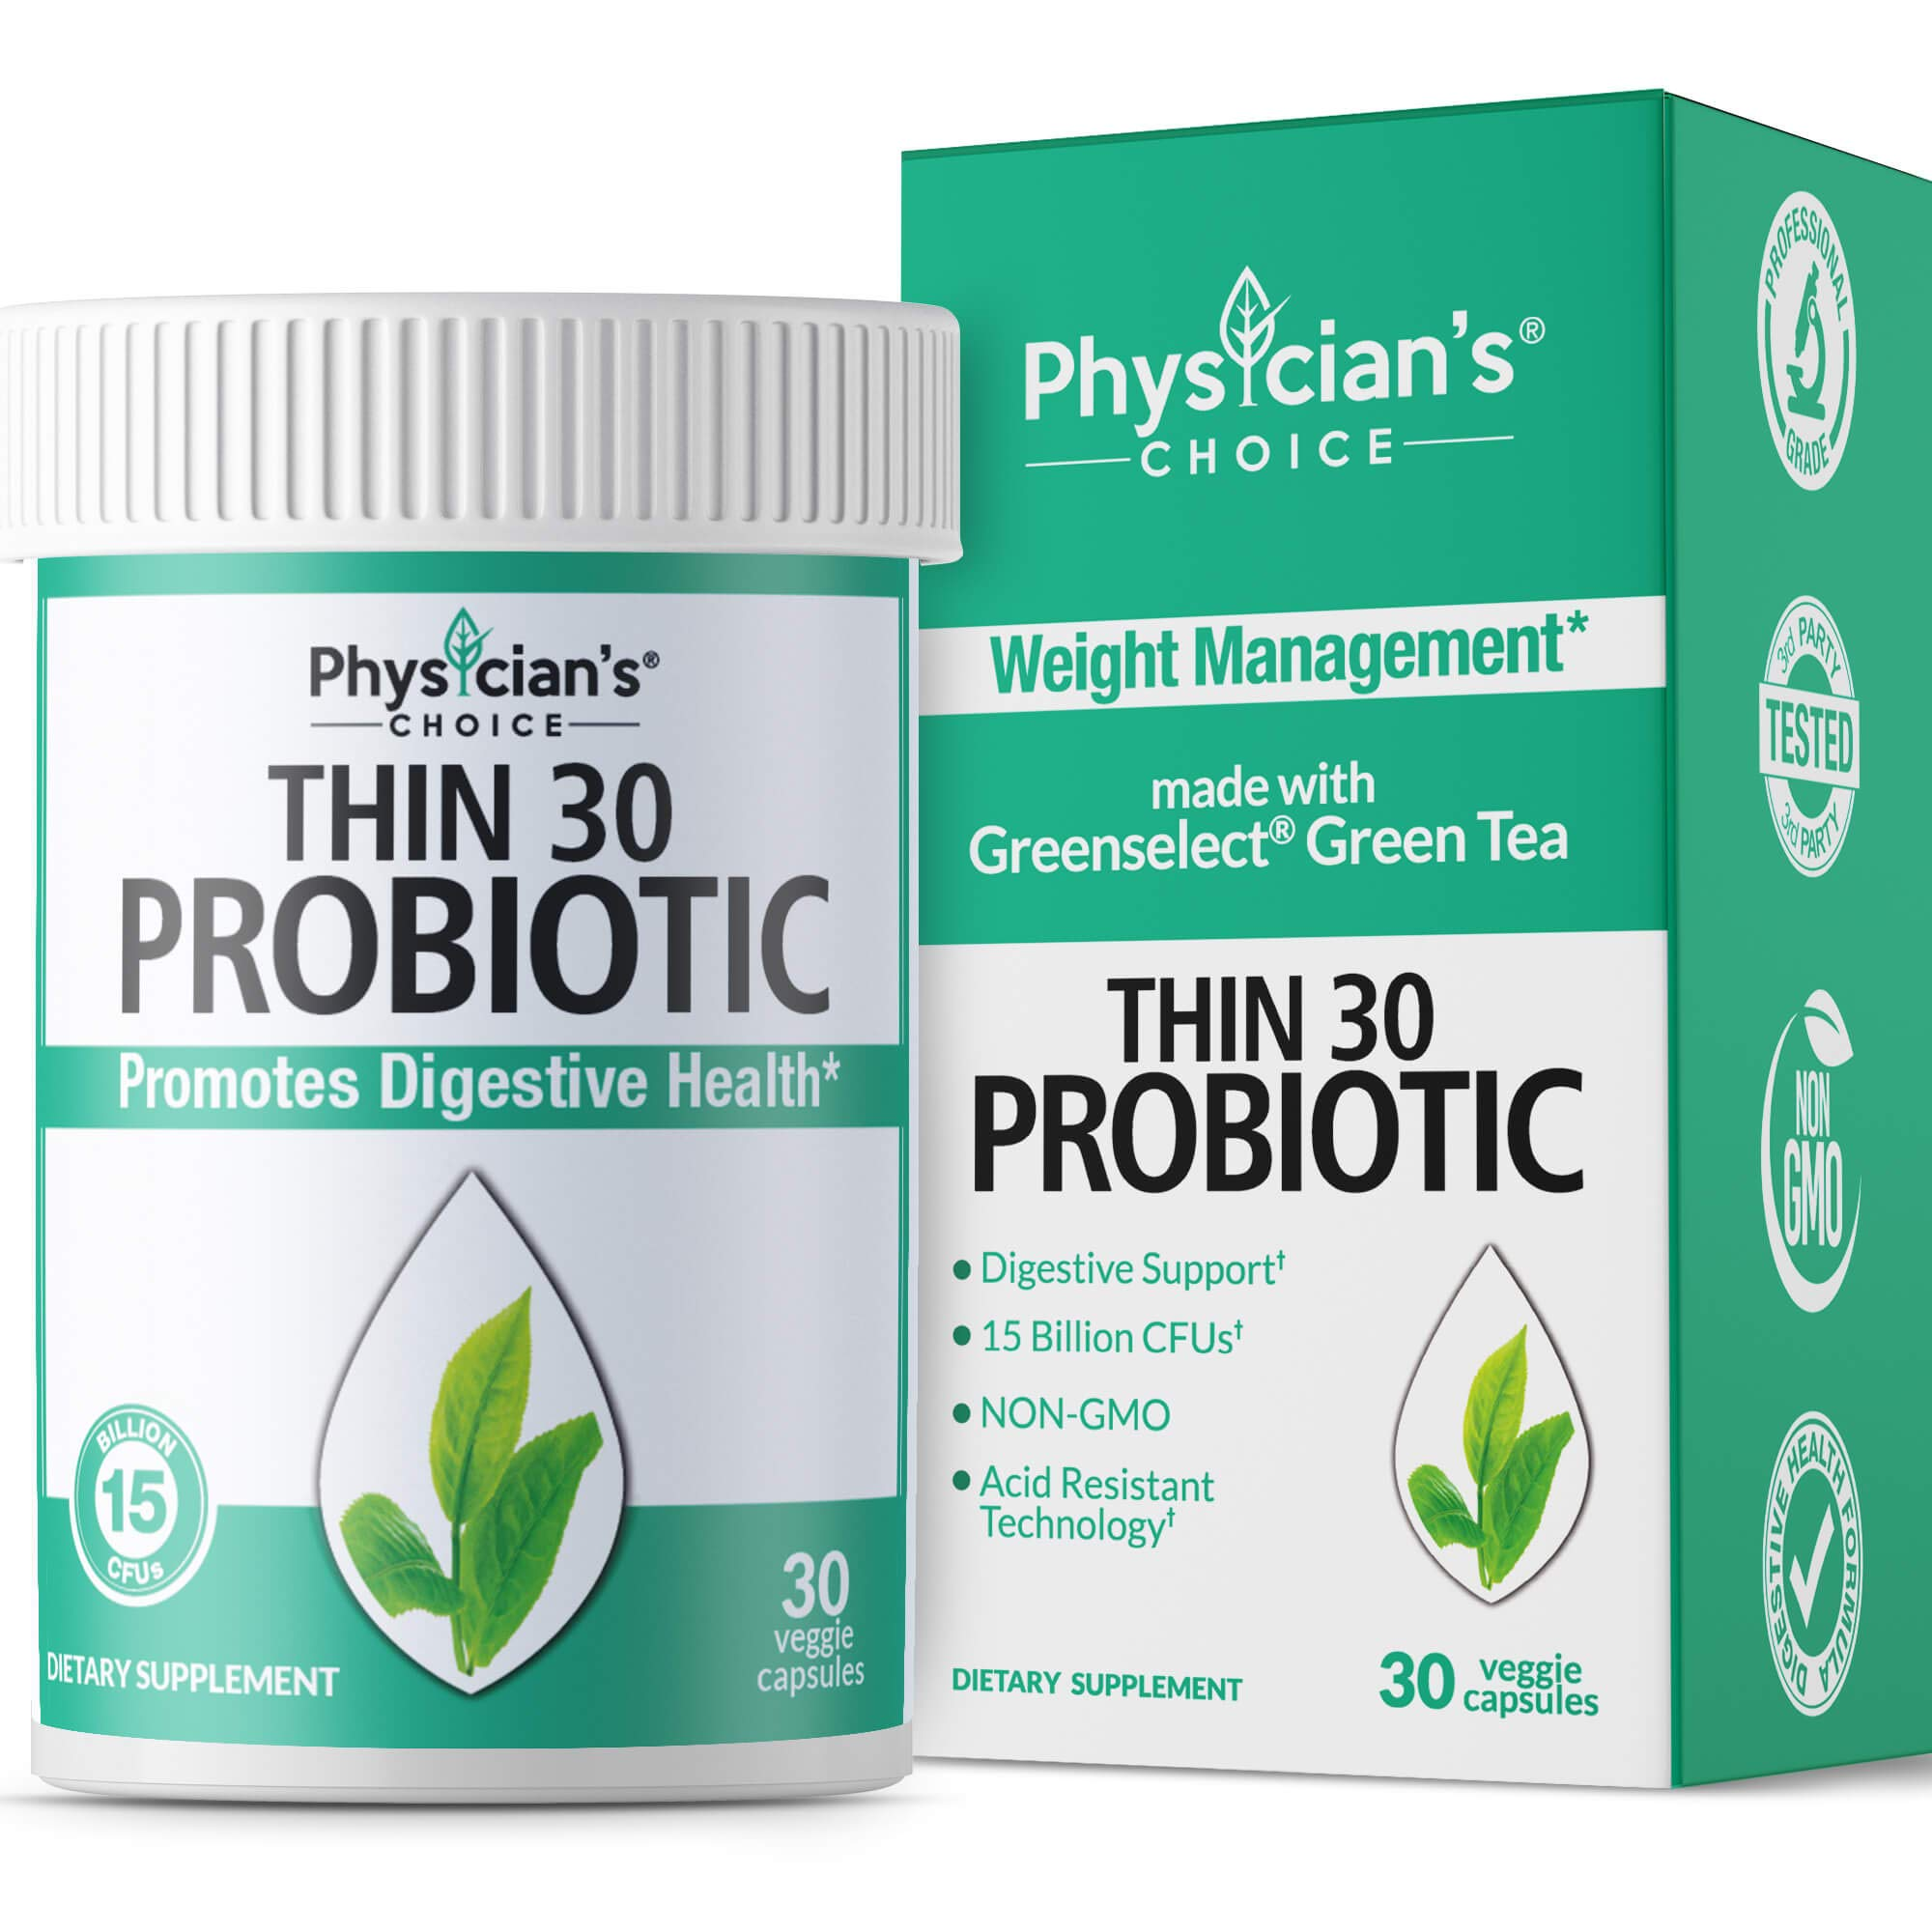 Probiotics for Women - Detox Cleanse & Weight Loss - Clinically Proven Greenselect- Organic Prebiotics, Digestive Enzymes, Apple Cider Vinegar & Green Tea Extract - Shelf Stable - 30 Capsules by Physician's CHOICE